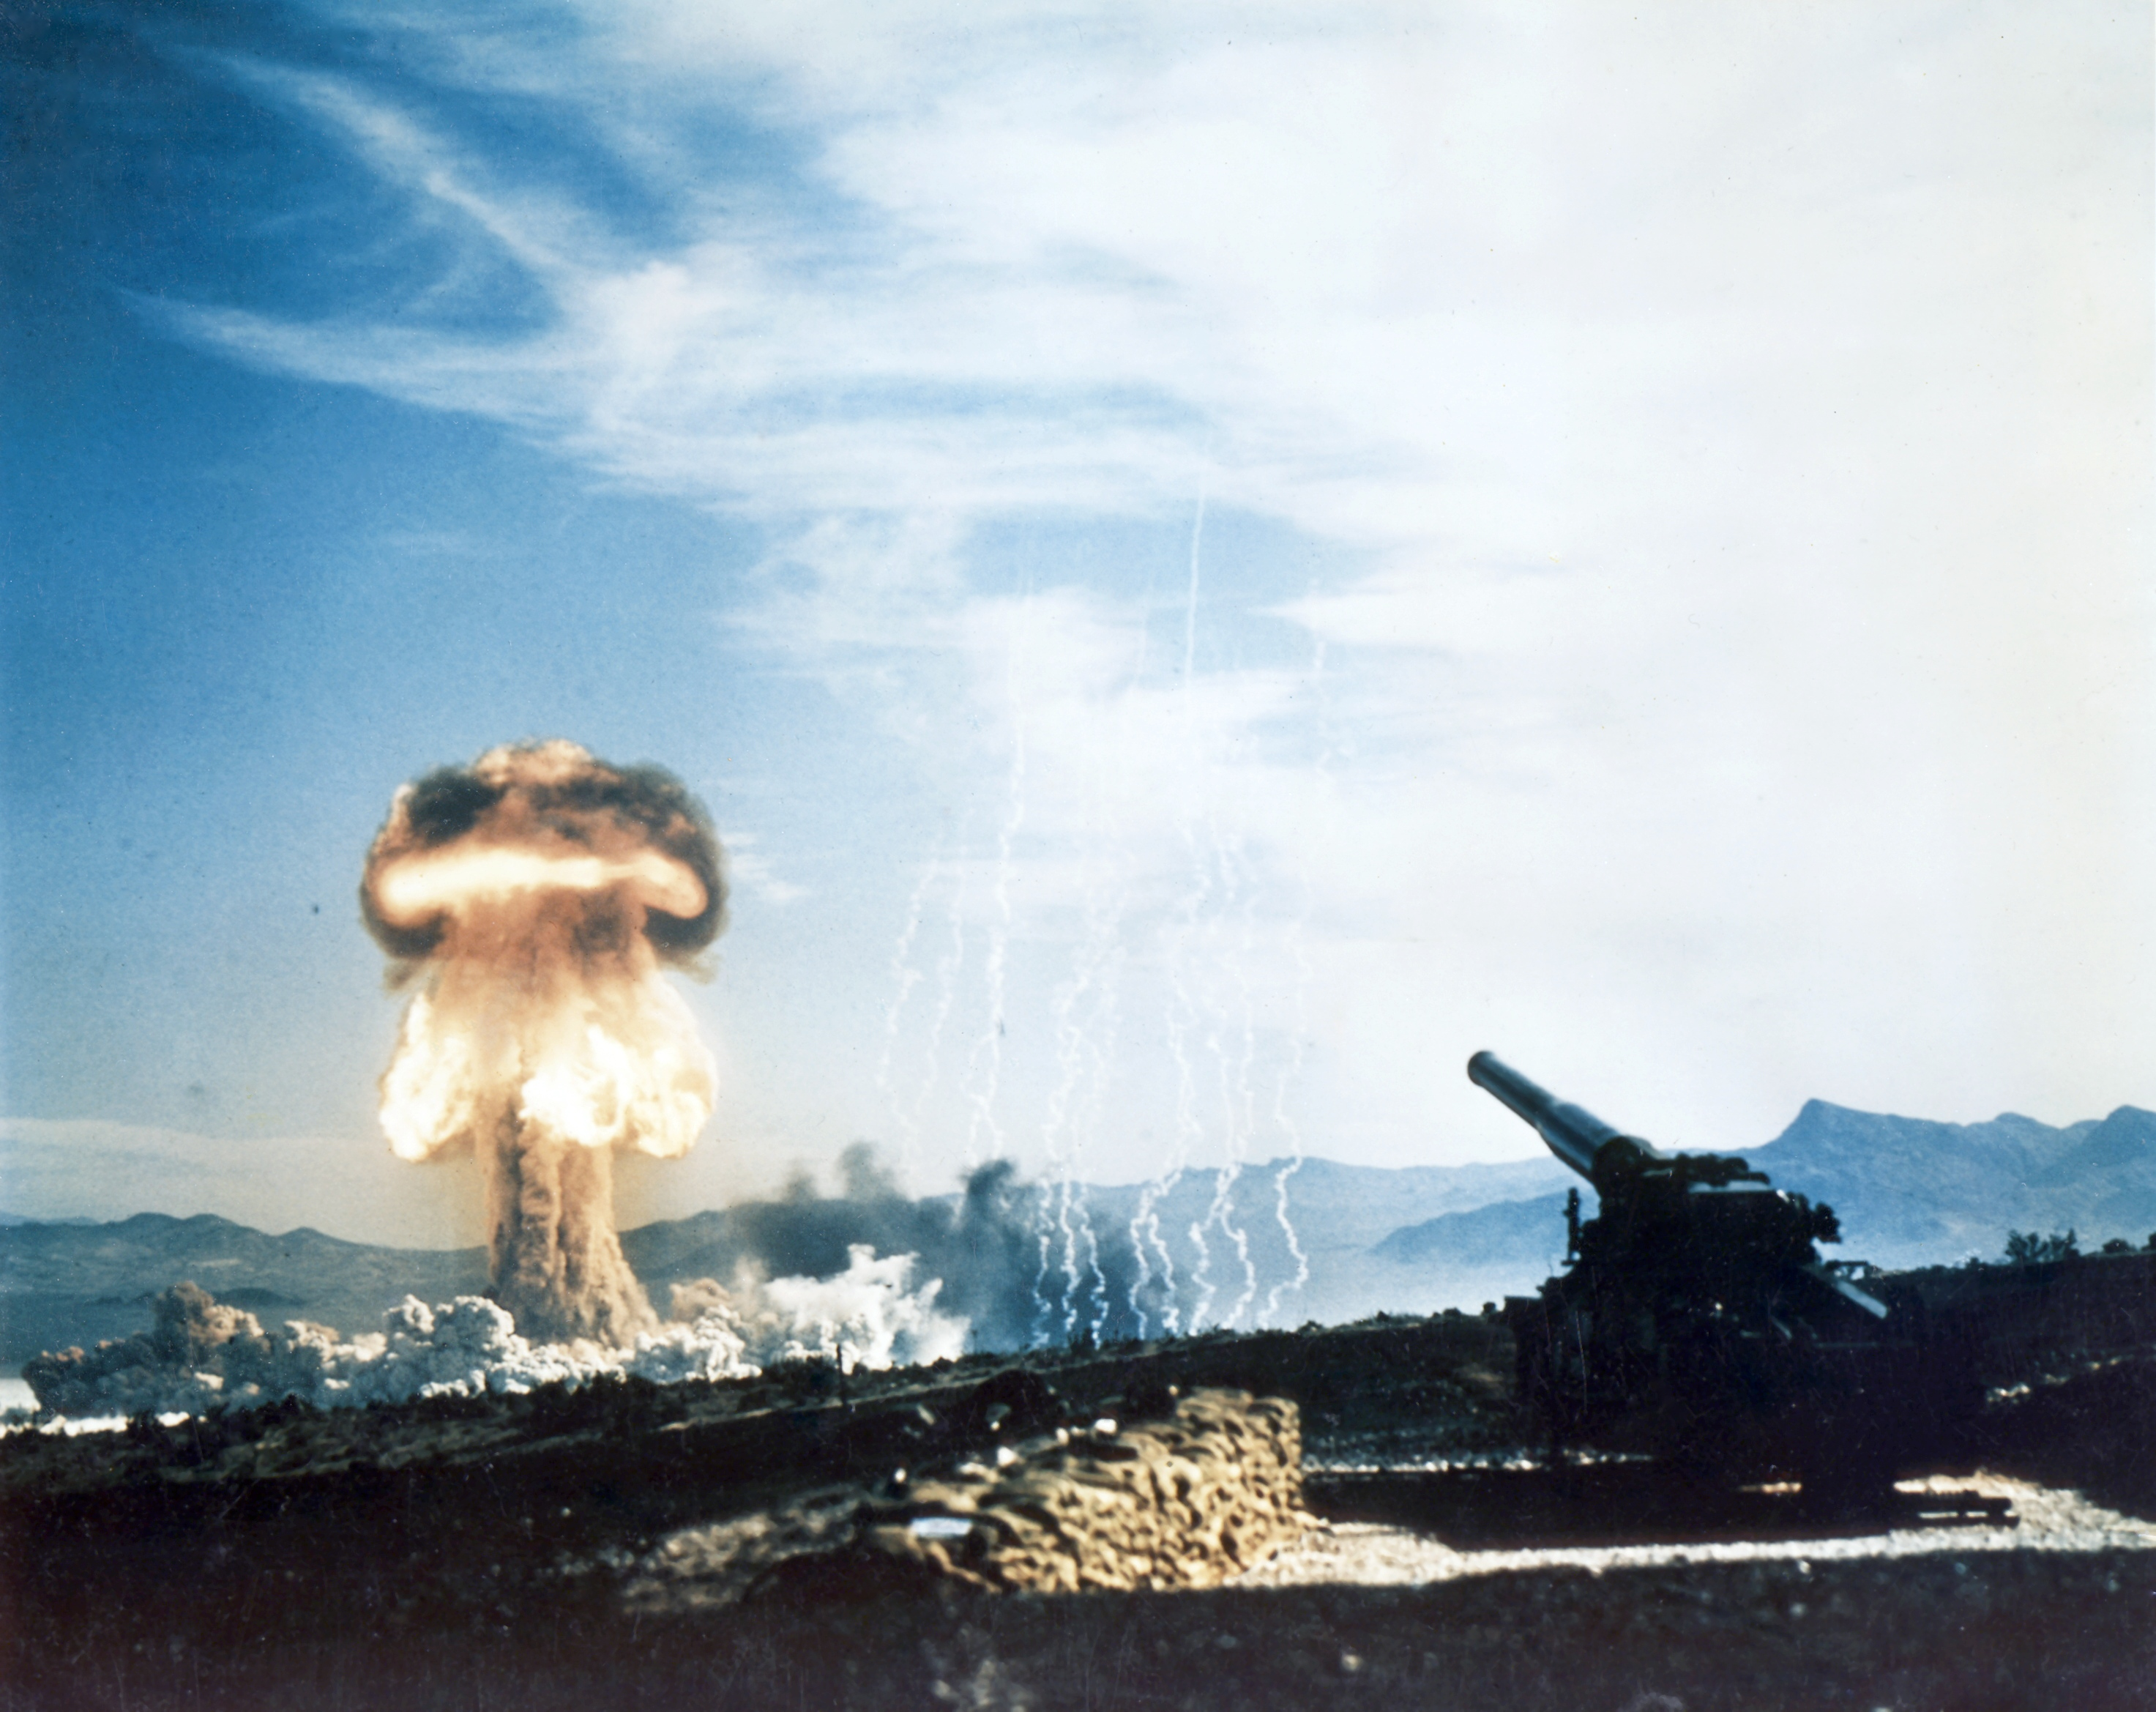 https://upload.wikimedia.org/wikipedia/commons/f/fe/Nuclear_artillery_test_Grable_Event_-_Part_of_Operation_Upshot-Knothole.jpg